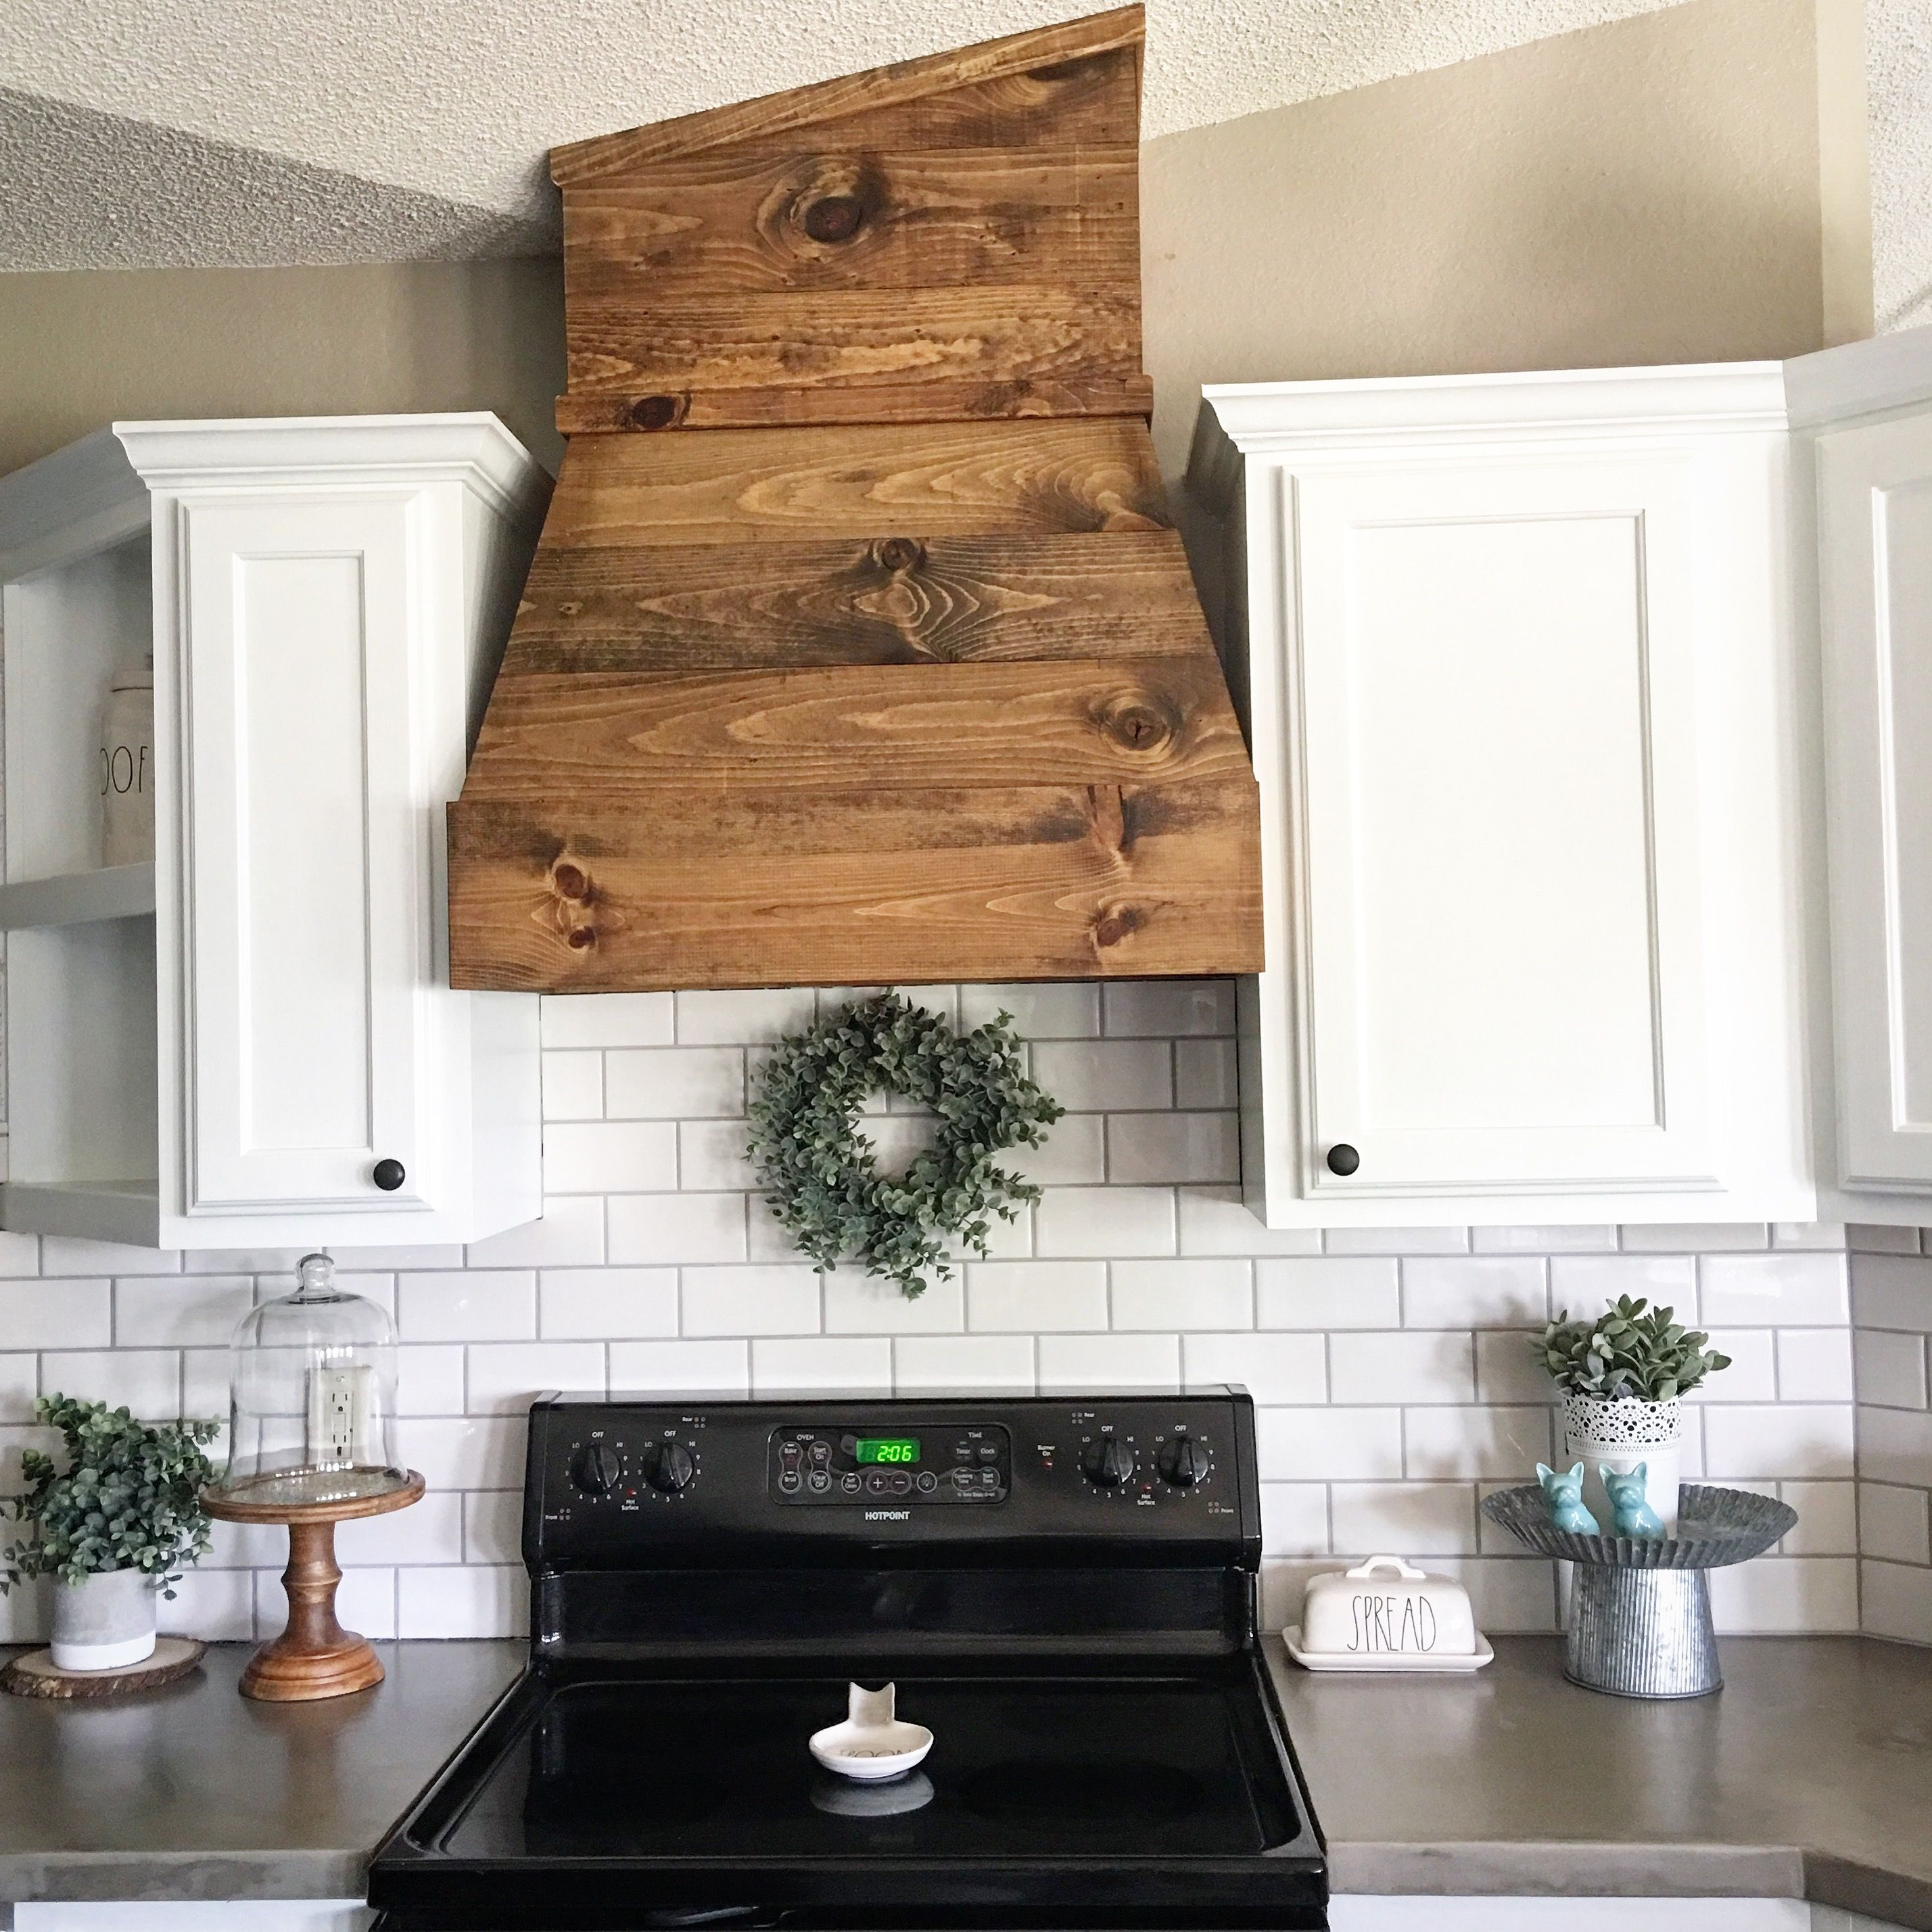 wood range hood kitchen remodel thepainterplace kitchen remodel on kitchen remodel vent hood id=72582